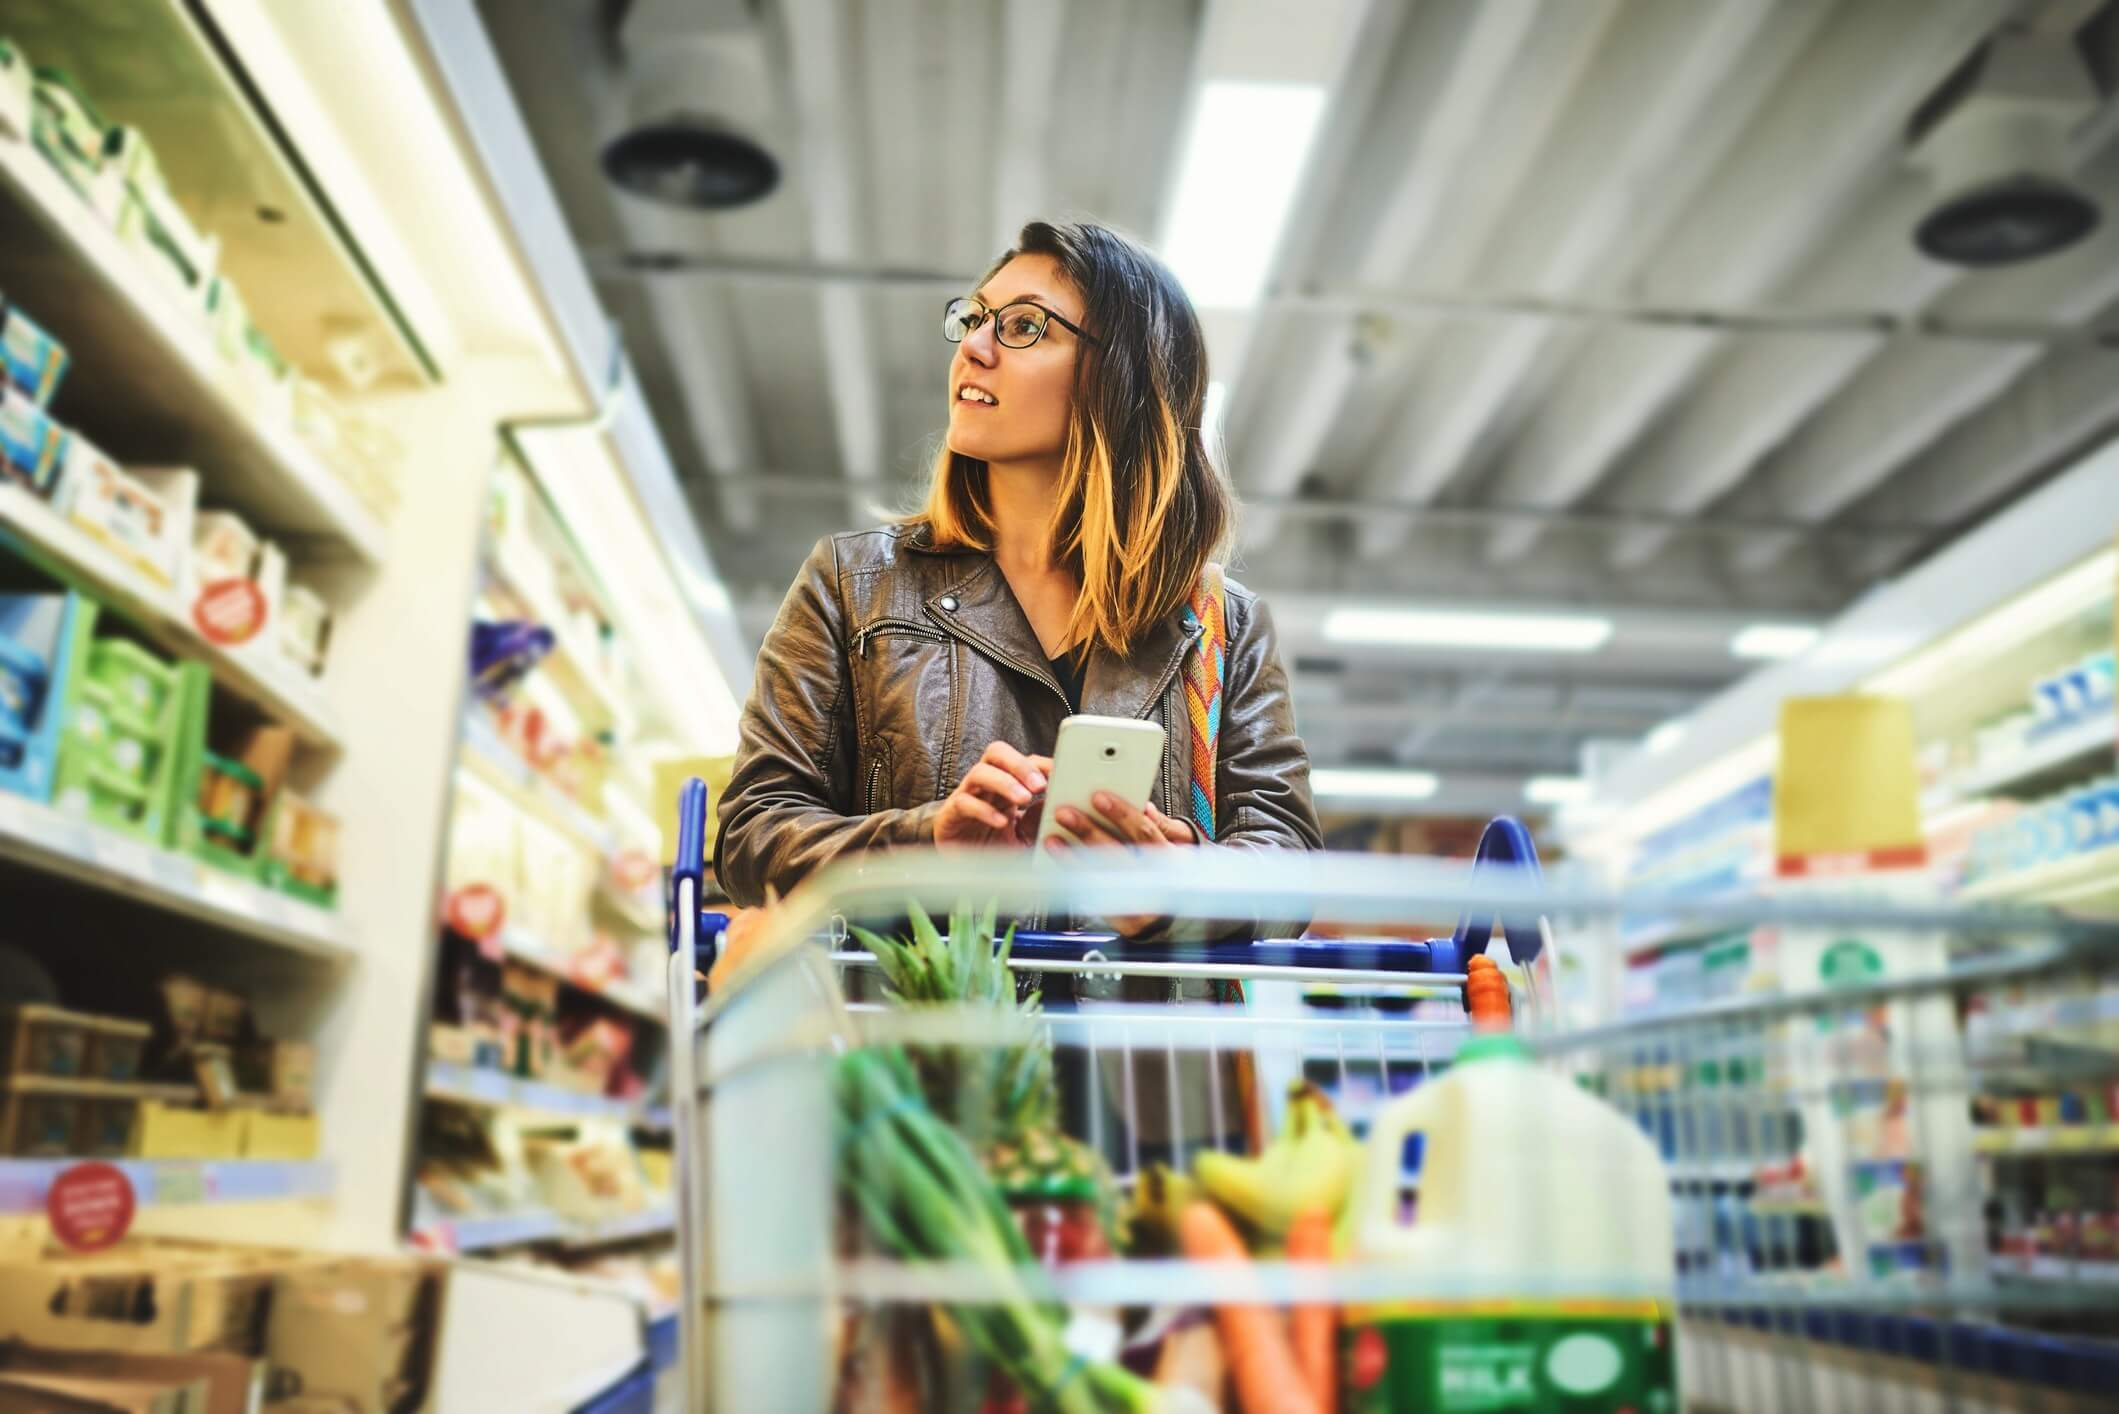 Female shopping at a grocery store